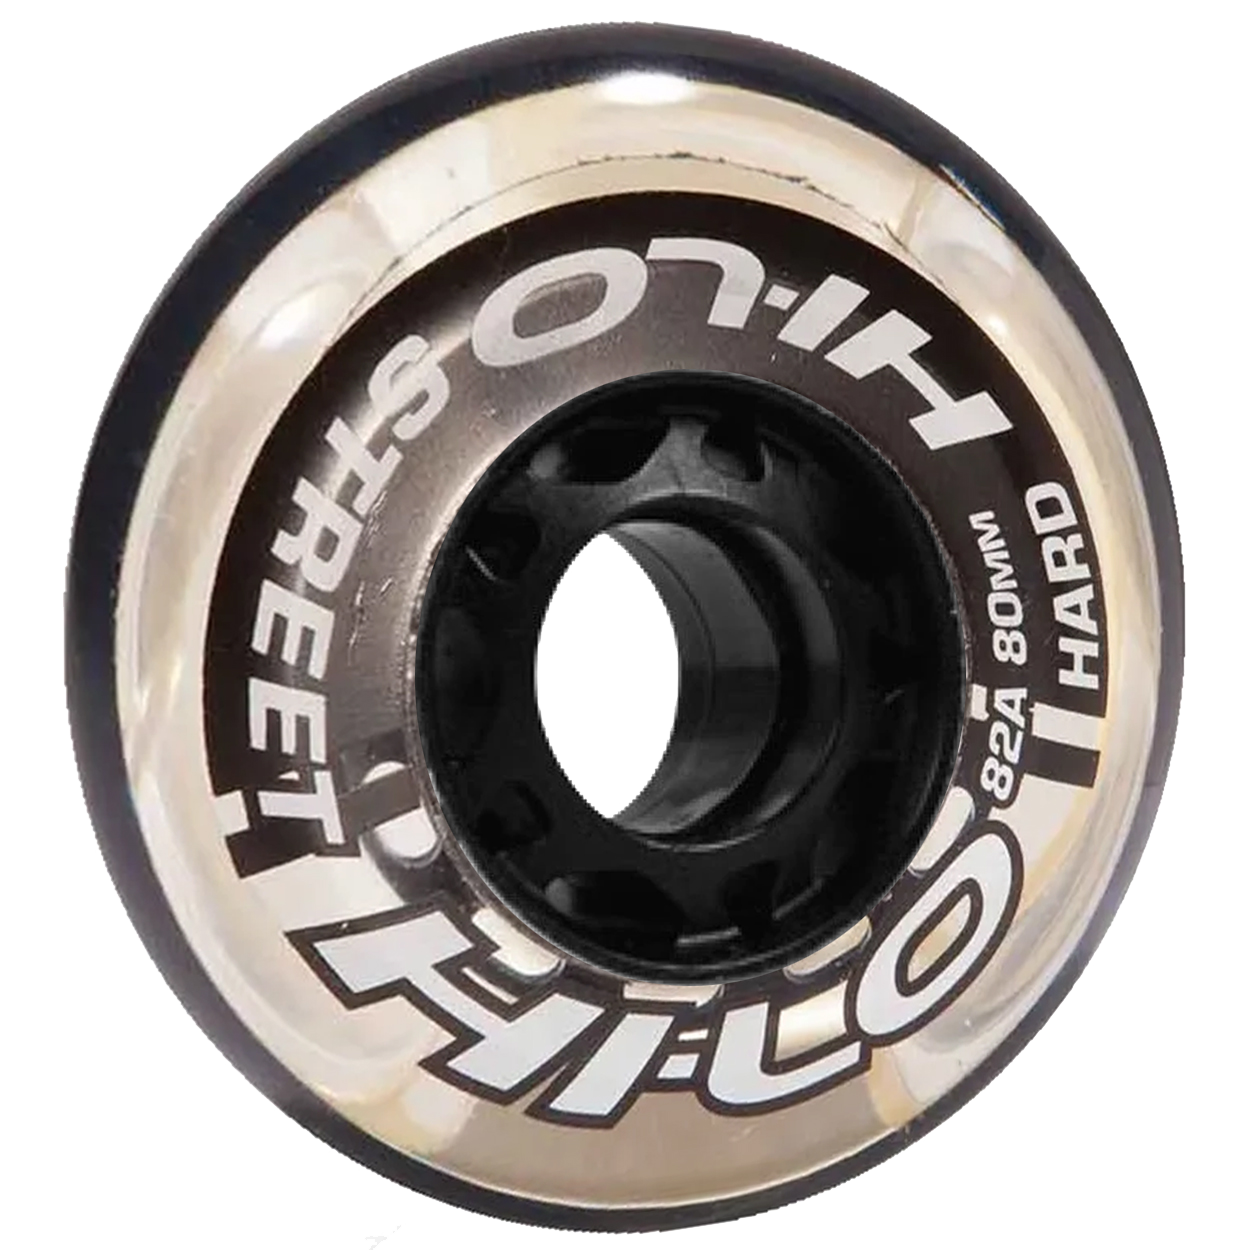 HI-LO STREET ROLLER HOCKEY WHEELS 4PK S16 (OUTDOOR)